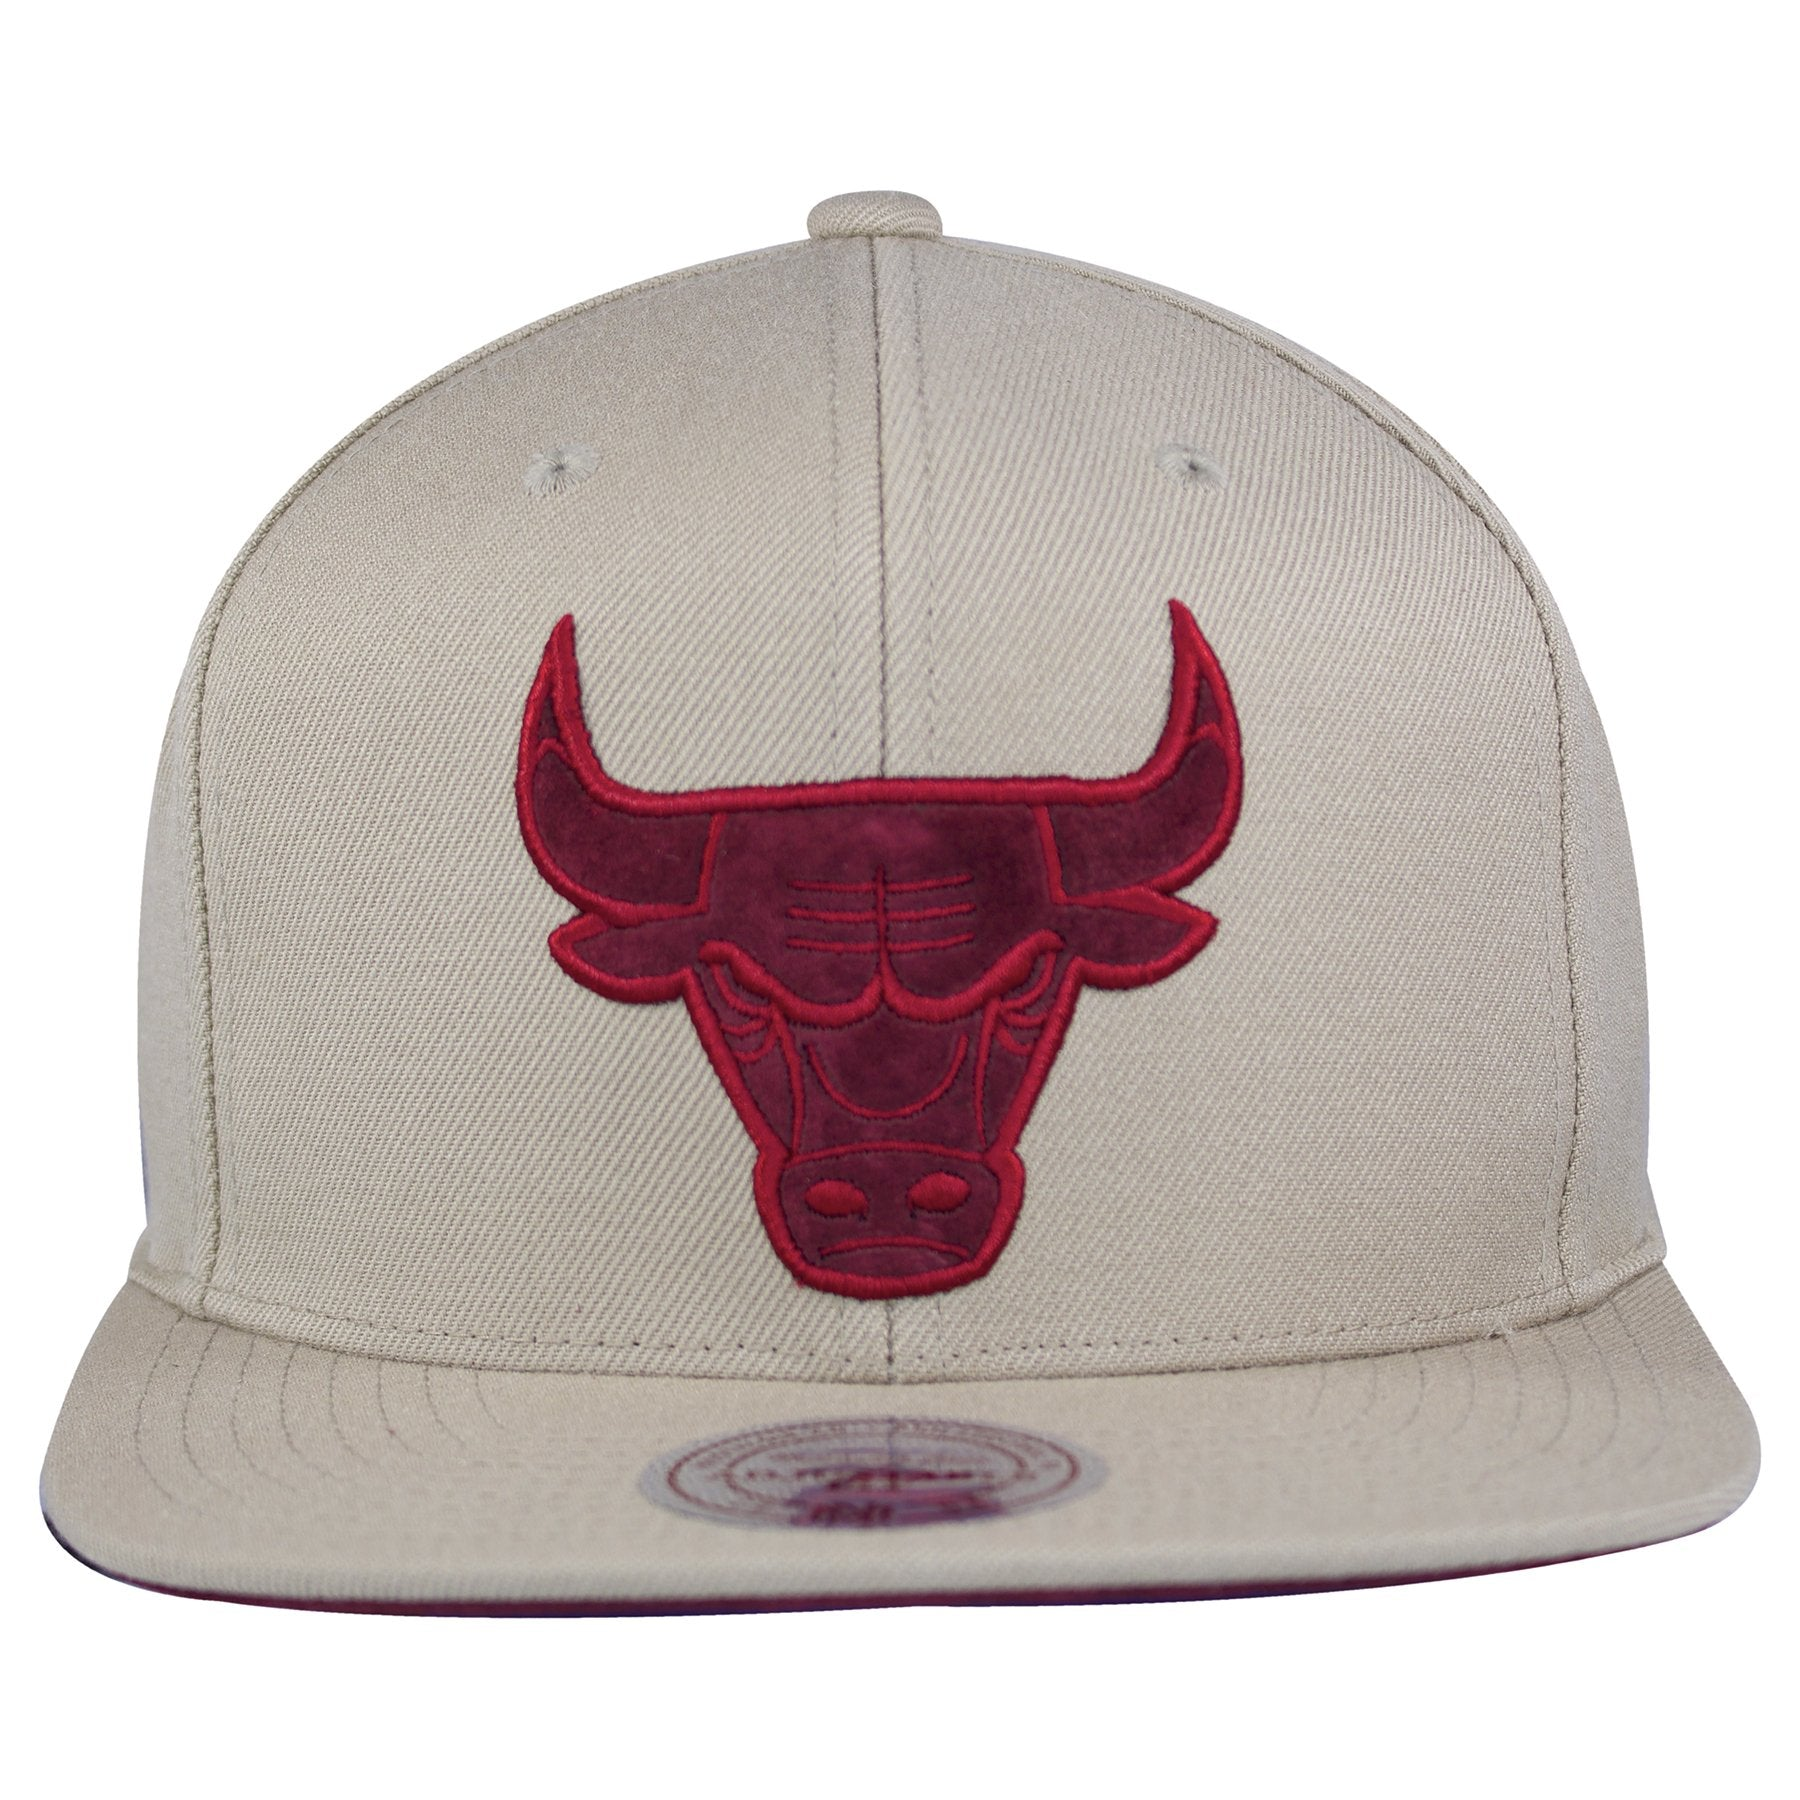 buy popular df422 9b2ca on the front of the jordan 12 bordeaux sneaker matching snapback hat is a  chicago bulls